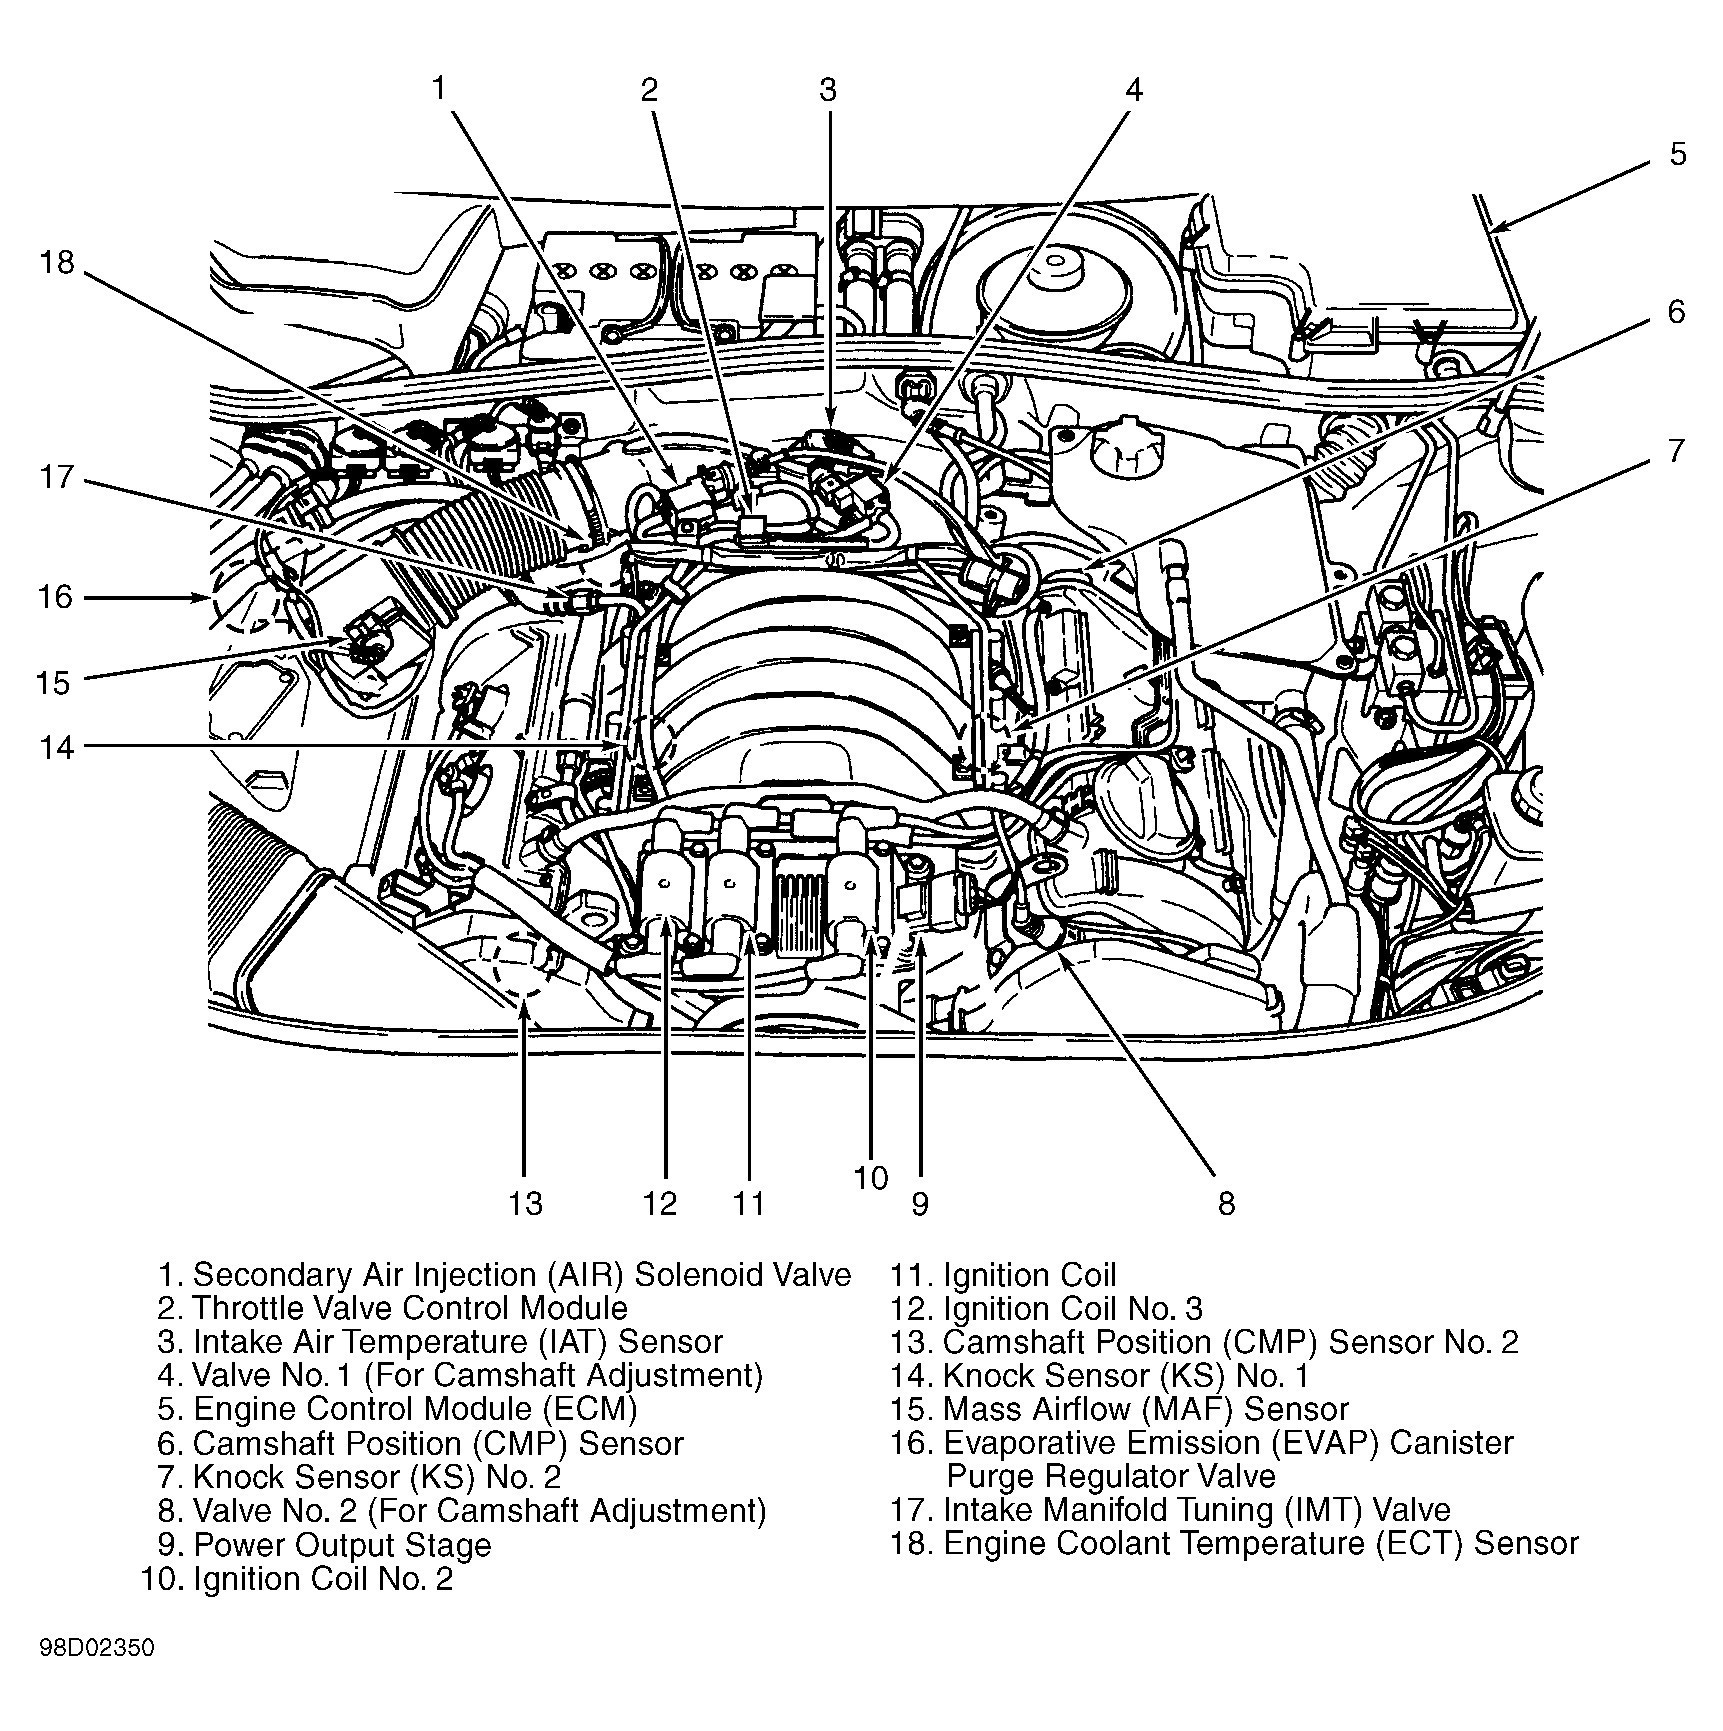 2006 dodge stratus 2 7 engine diagram wiring diagram ops  2004 dodge stratus engine diagram #7